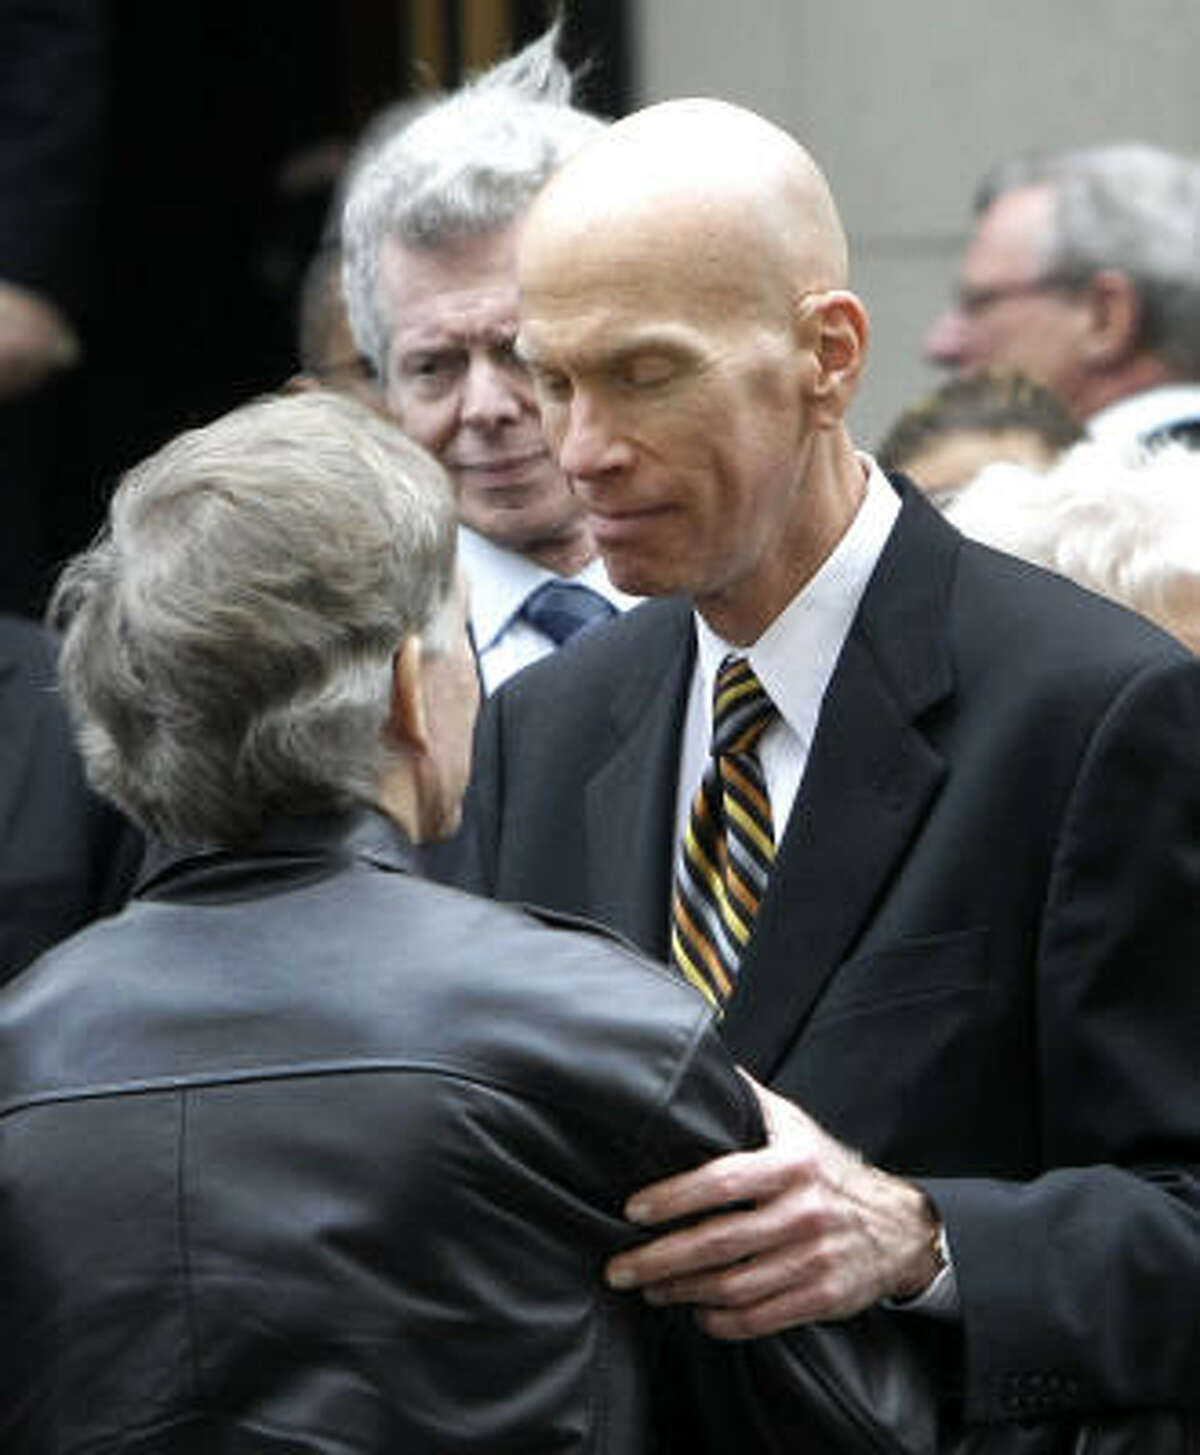 Paul Harvey Jr., right, son of legendary radio broadcaster Paul Harvey, talks with an unidentified man after a funeral service for his father at the Fourth Presbyterian Church in Chicago, Saturday.